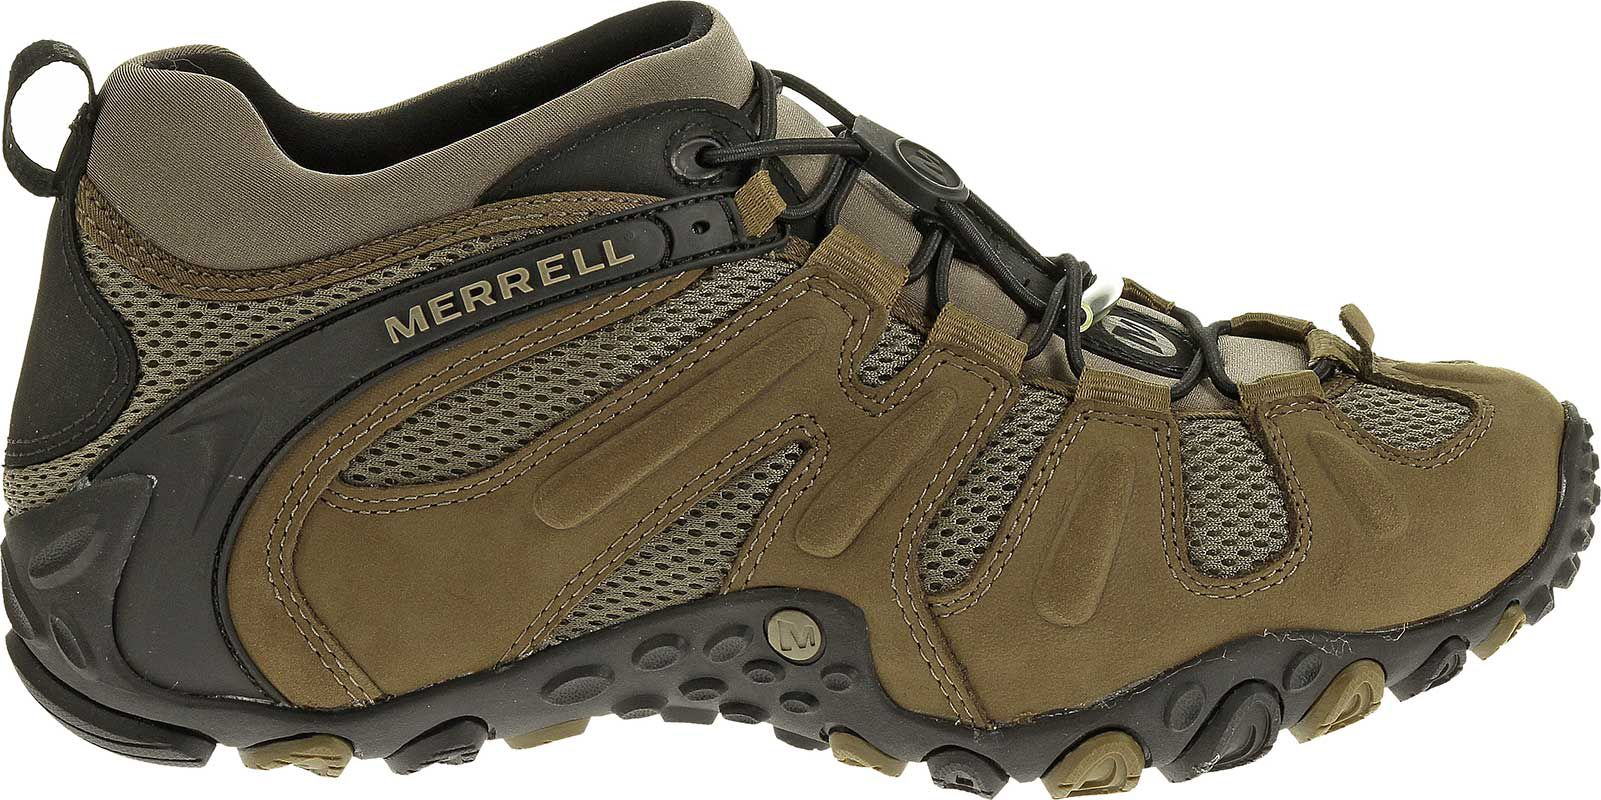 MERRELL Men's Chameleon Prime Stretch Hiking Shoes buy cheap limited edition cheap sale finishline Mh5LR